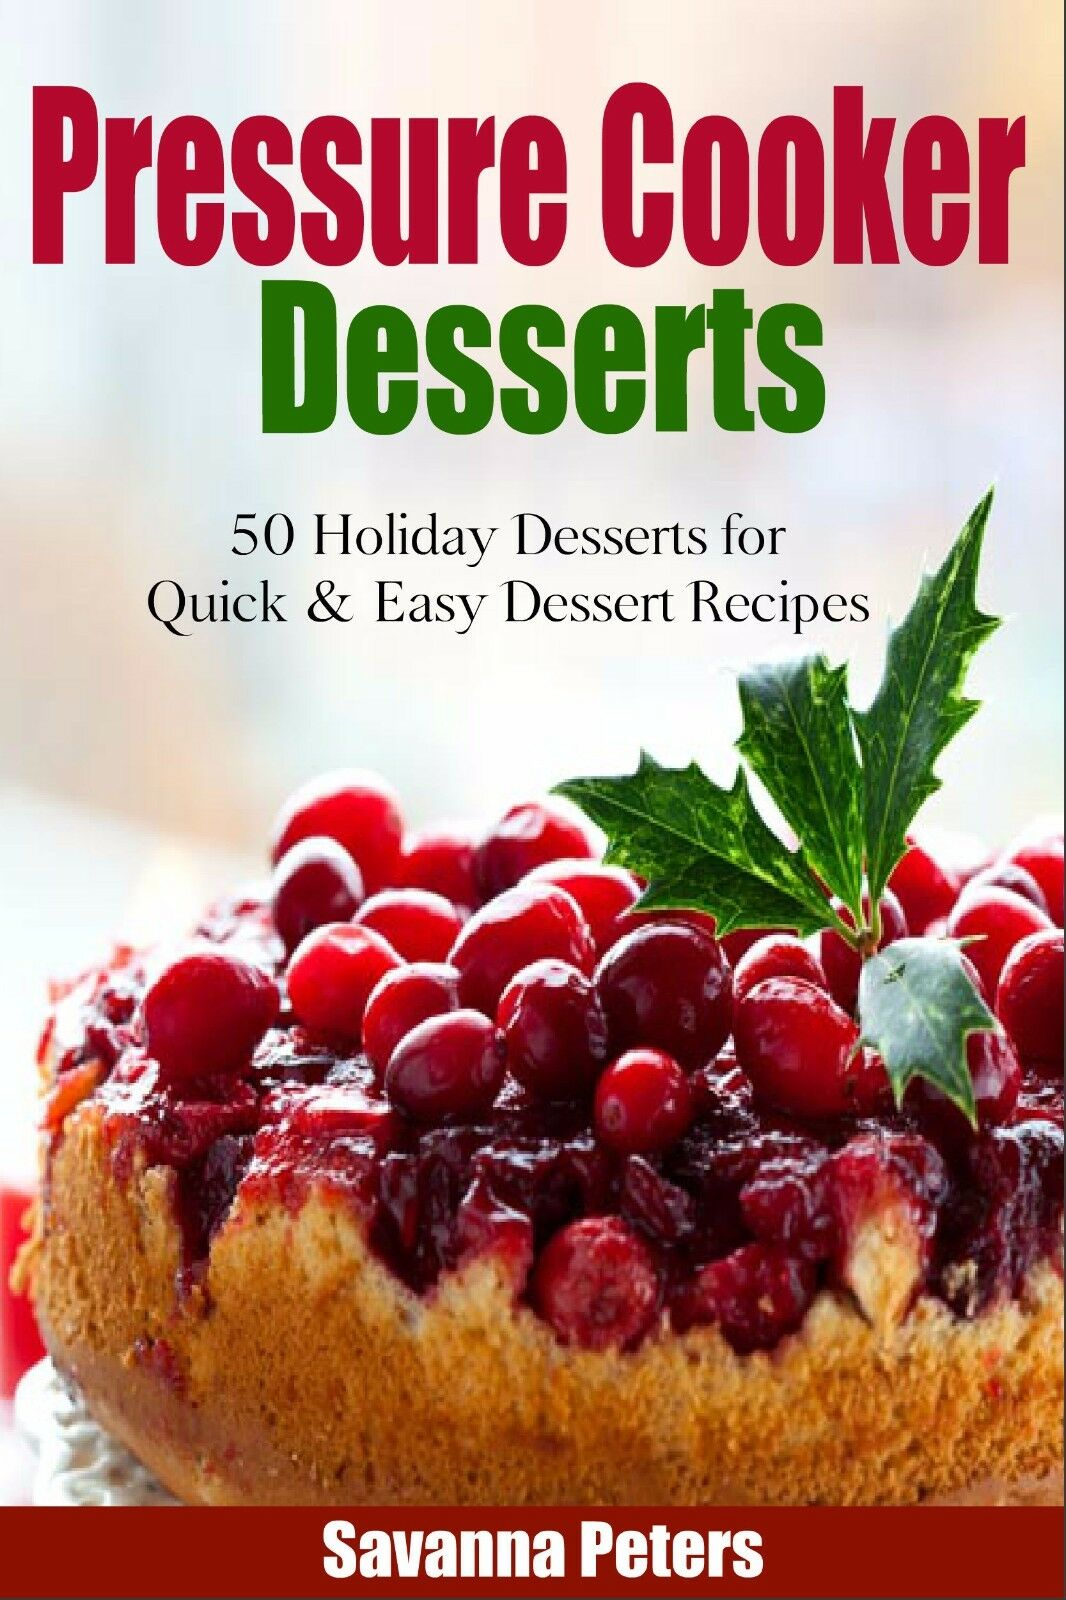 pressure cooker desserts 50 holiday dessert recipes for